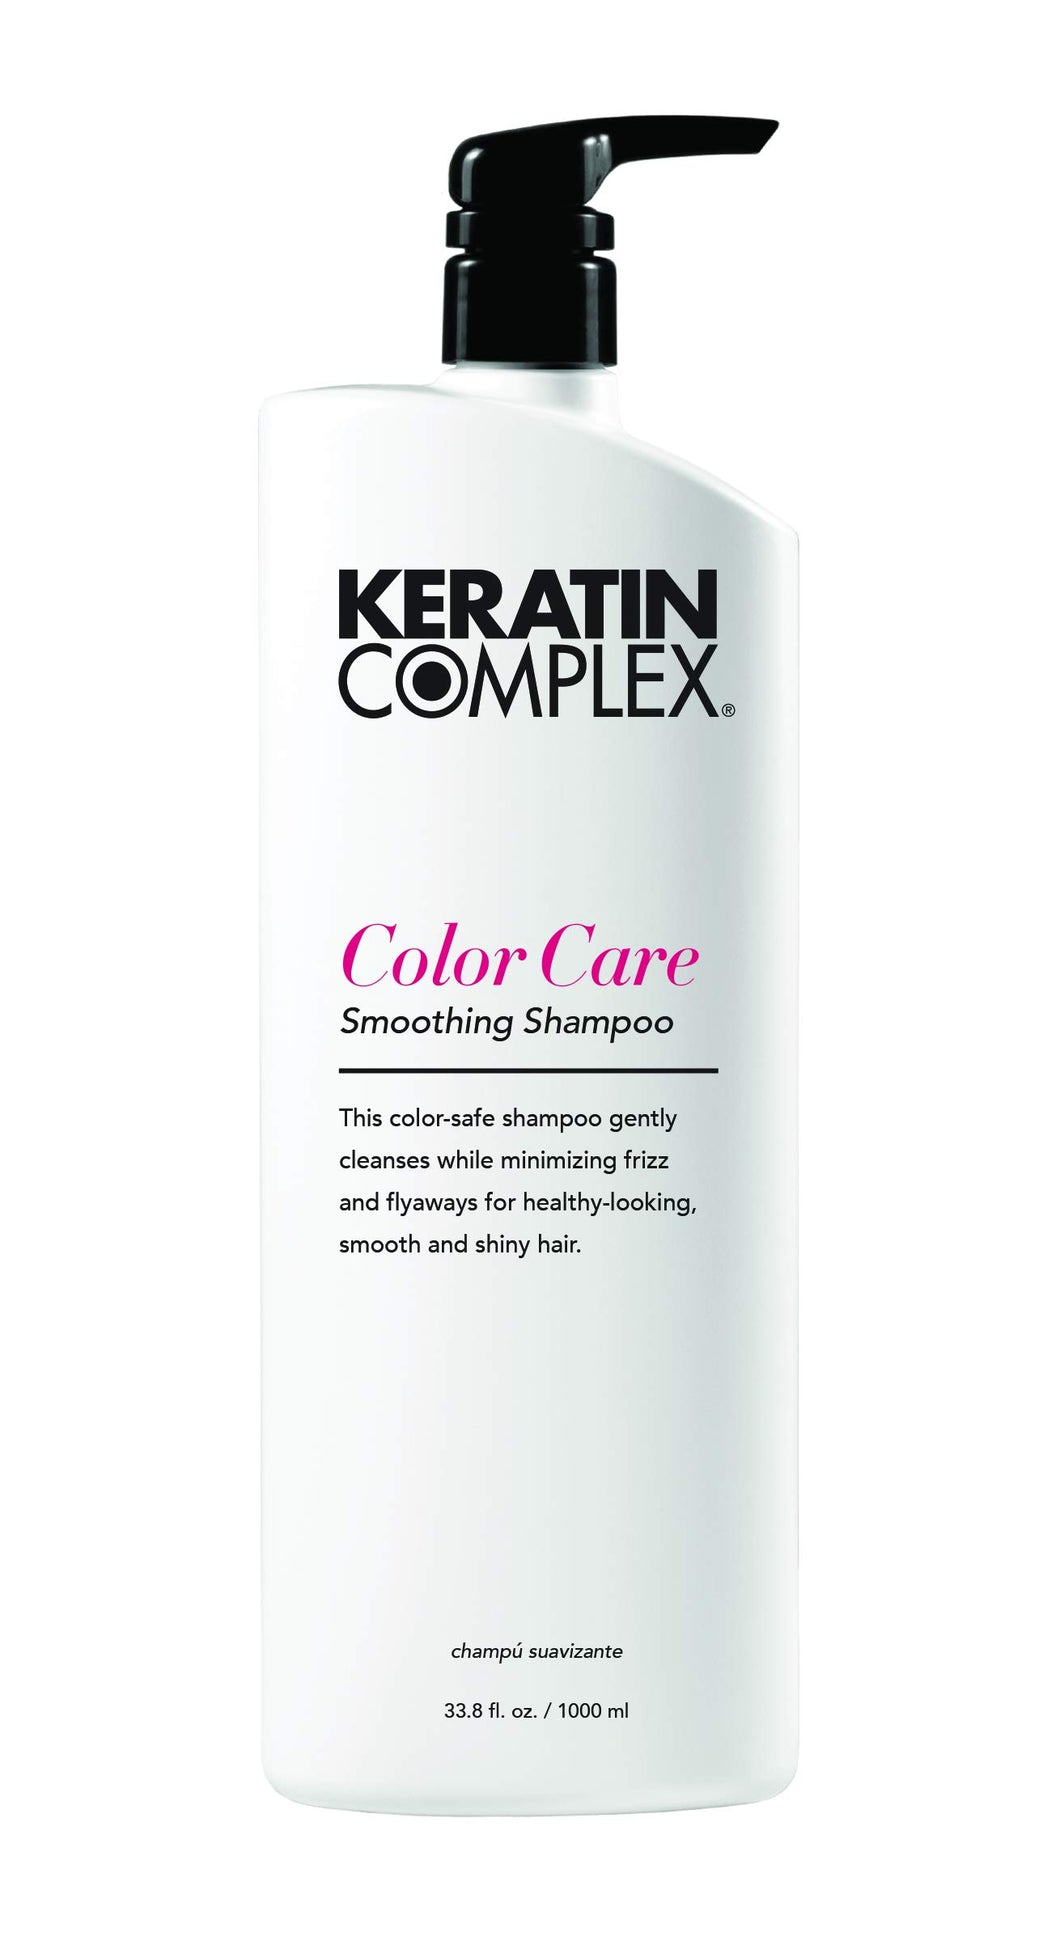 Keratin Complex Color Care Smoothing Shampoo, 33.8 oz